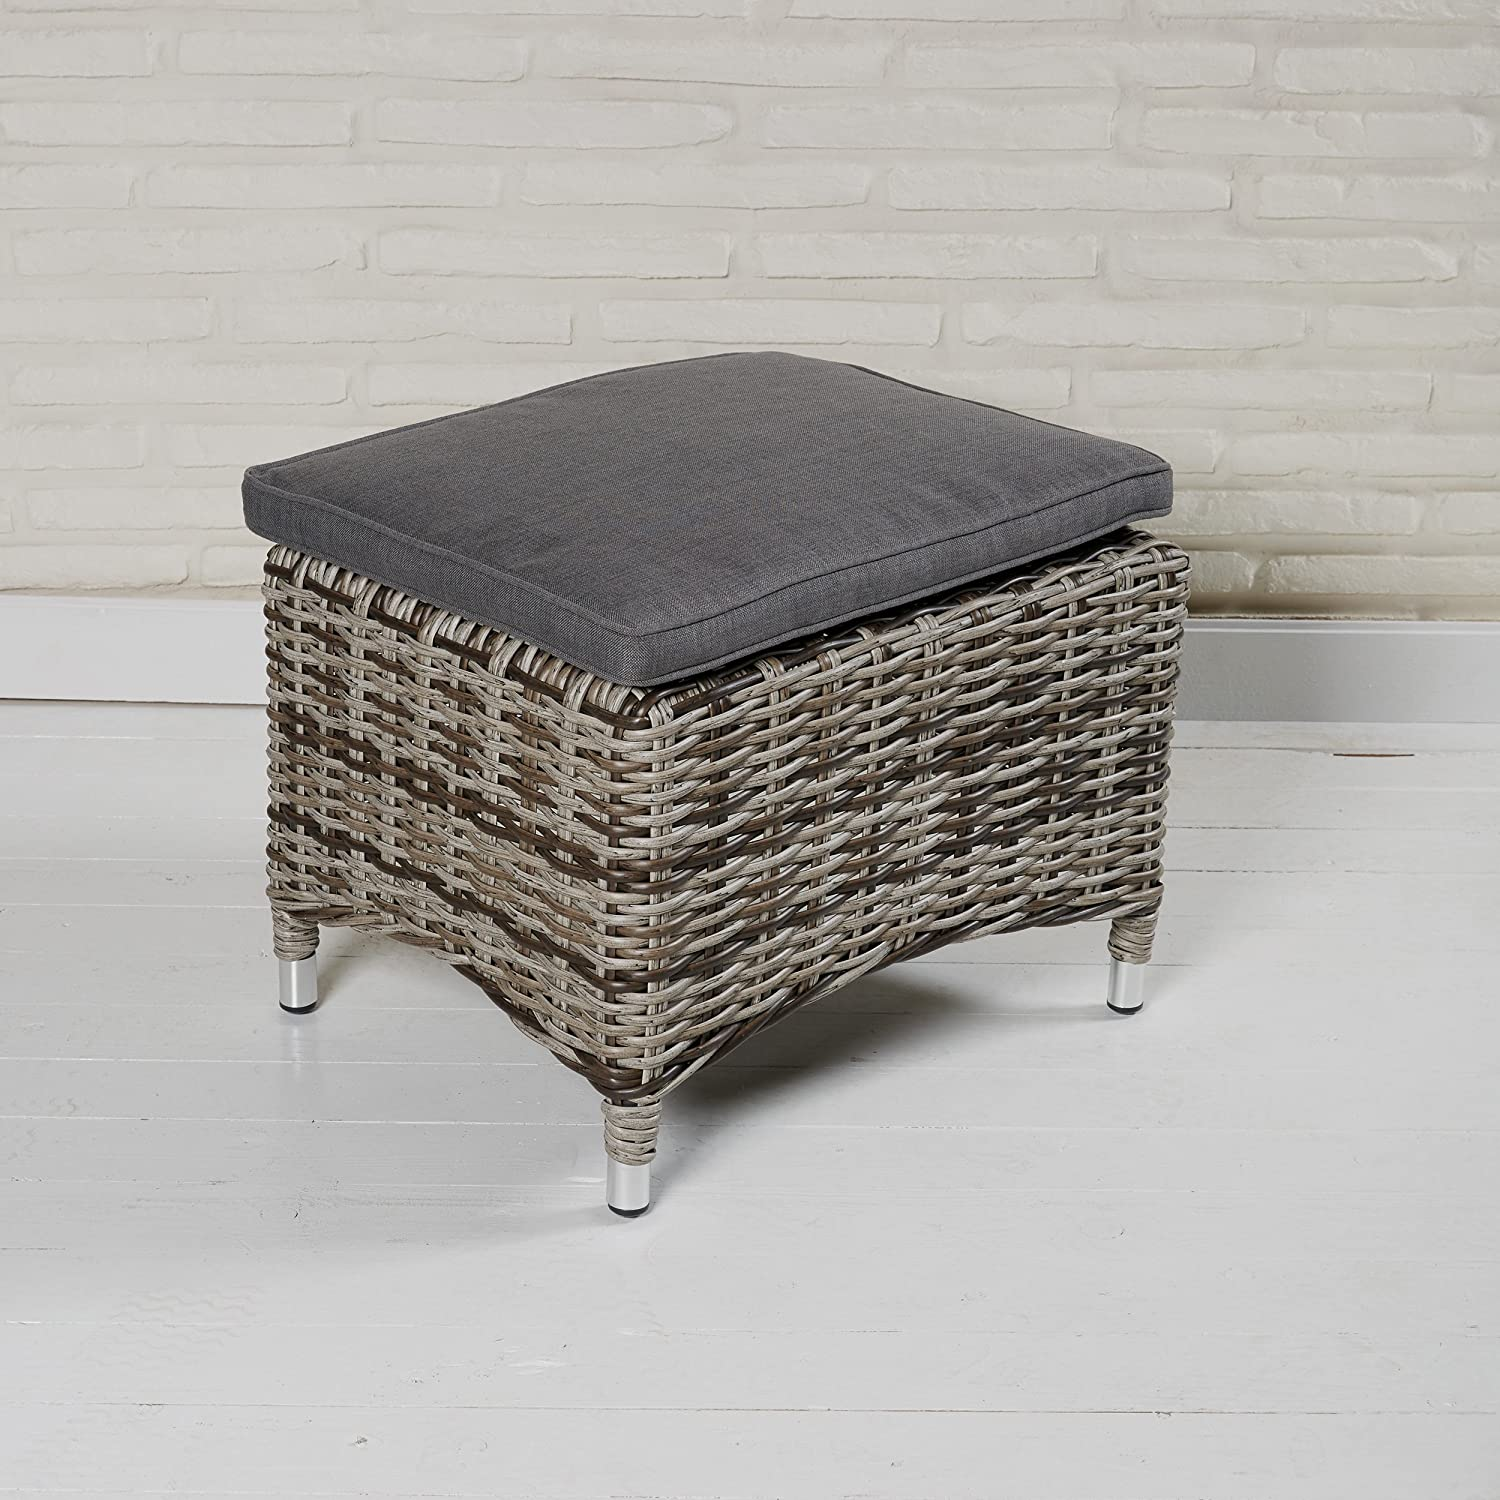 rattan hocker excellent yogamatte meditation kissen rattan ottoman hocker natrlichen rattan. Black Bedroom Furniture Sets. Home Design Ideas